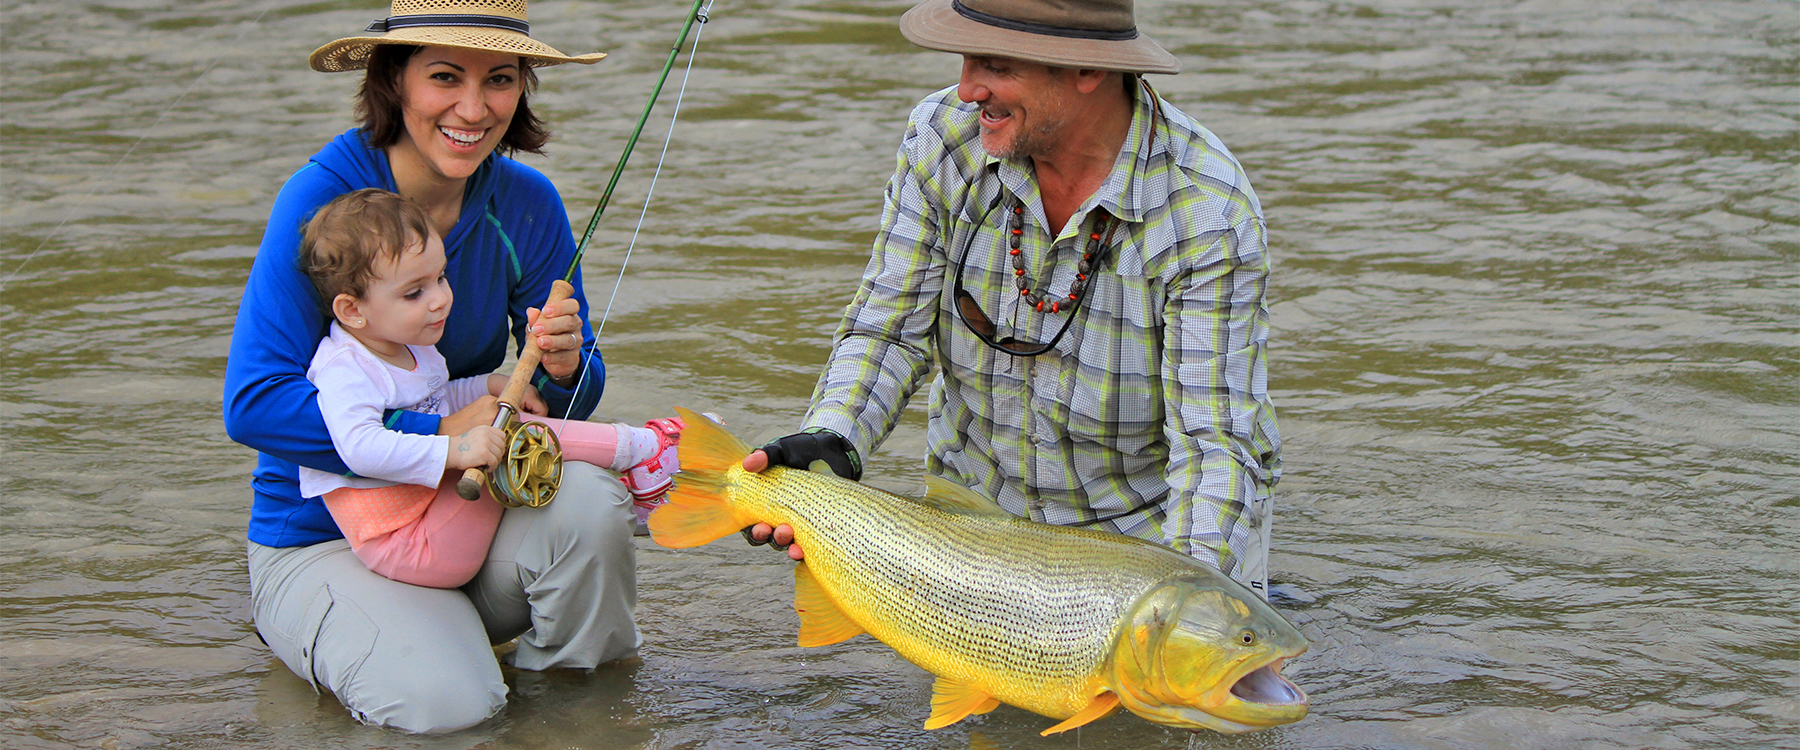 Mother's Day Fly Fishing Gift Ideas